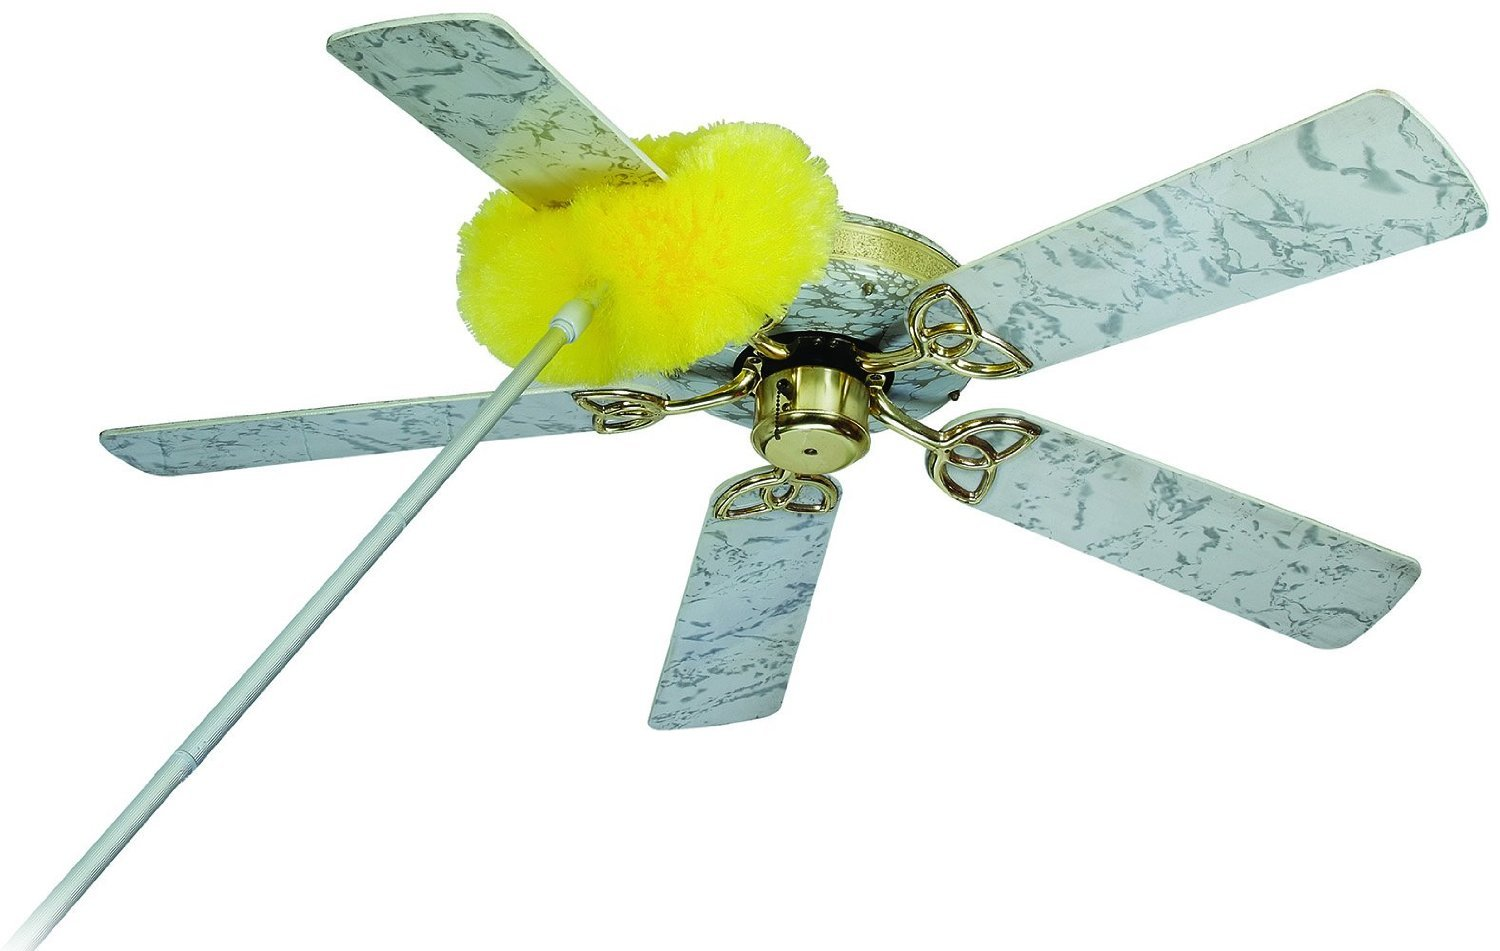 Clean Microfiber Unger Brush Ceiling Fan Duster Cleaner Washable up ...